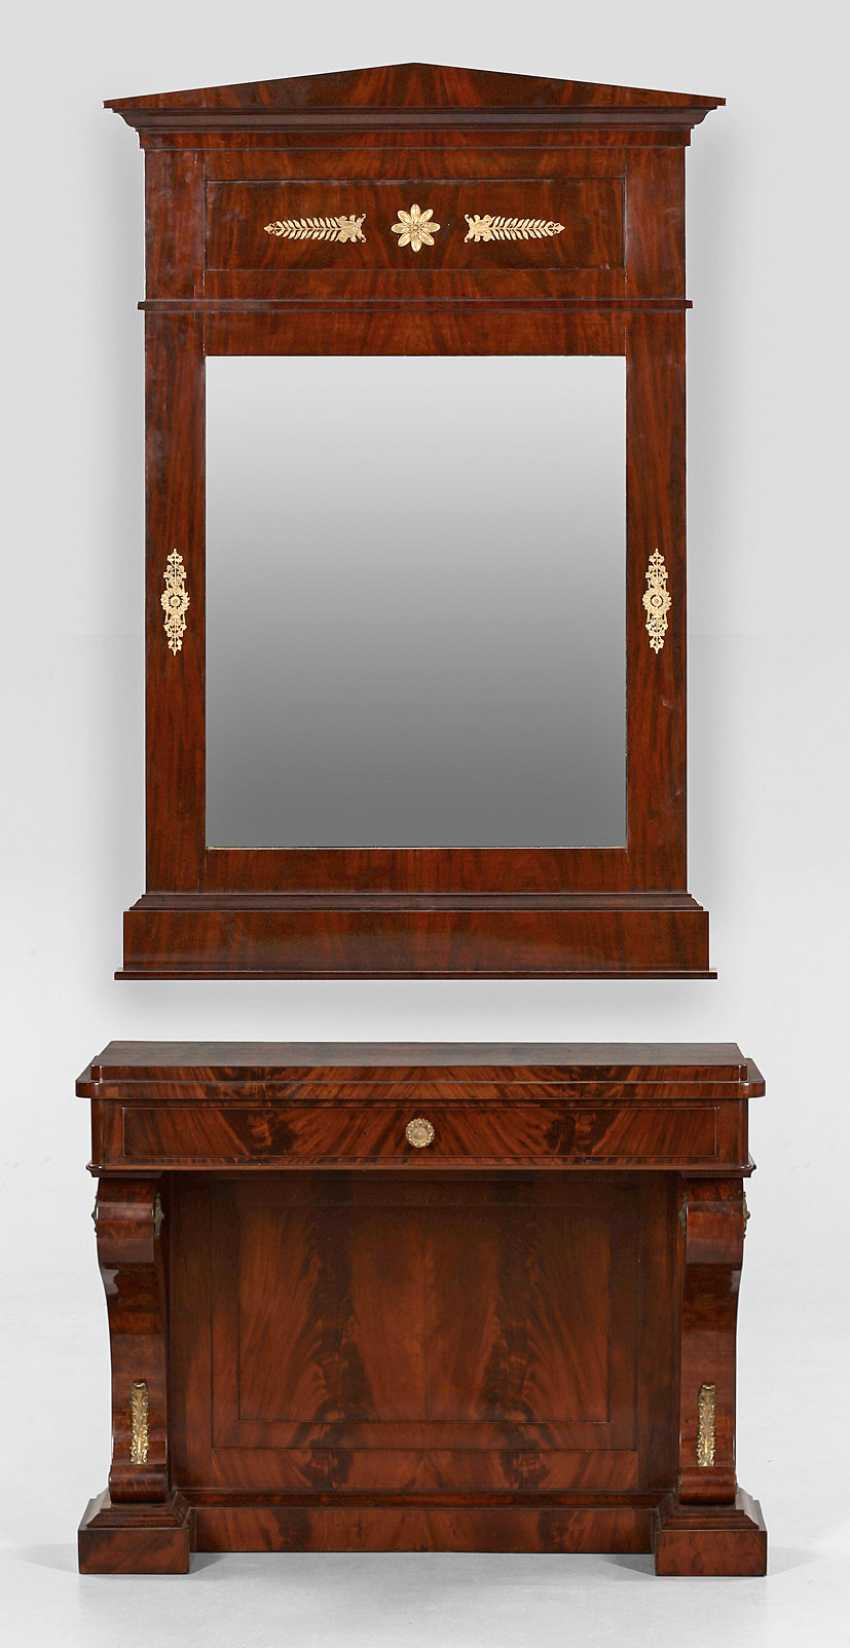 Large Biedermeier wall mirror with console table - photo 1